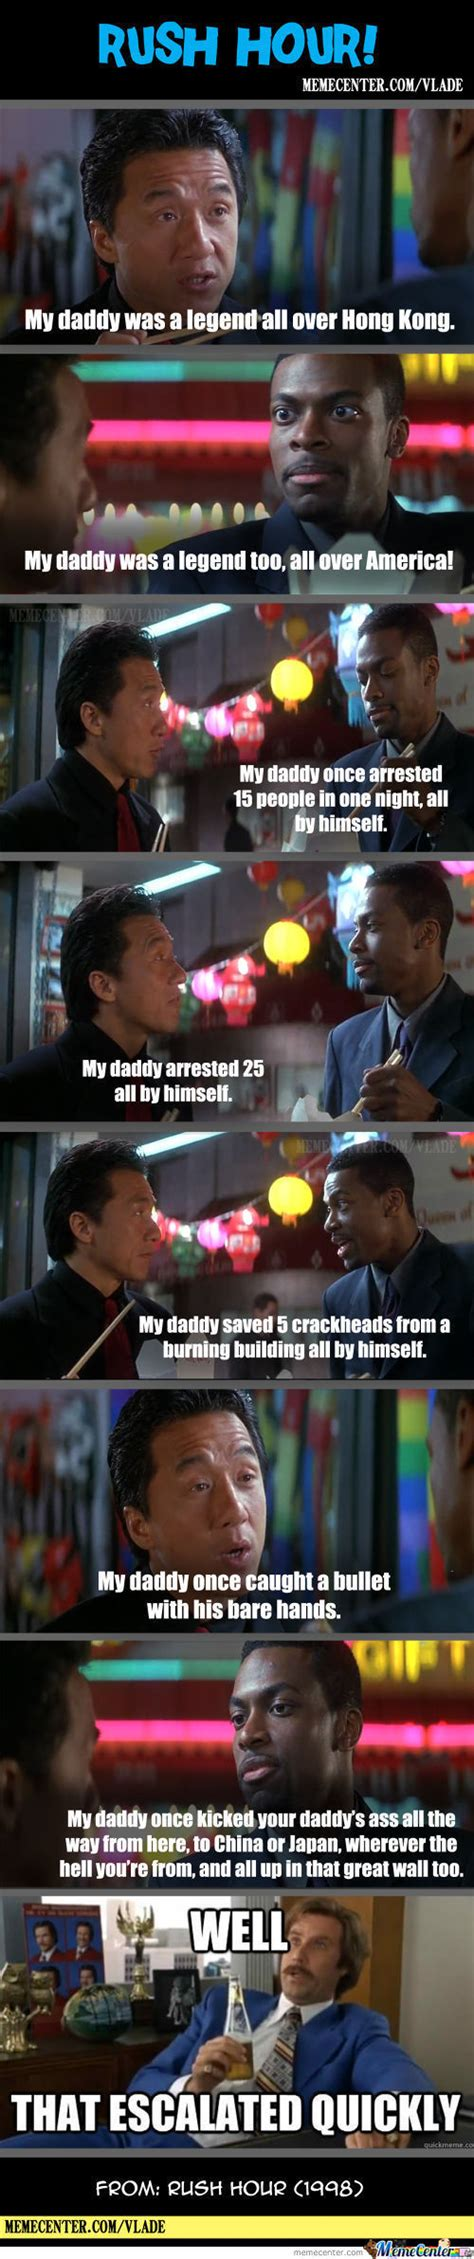 Rush Meme - rush hour memes best collection of funny rush hour pictures